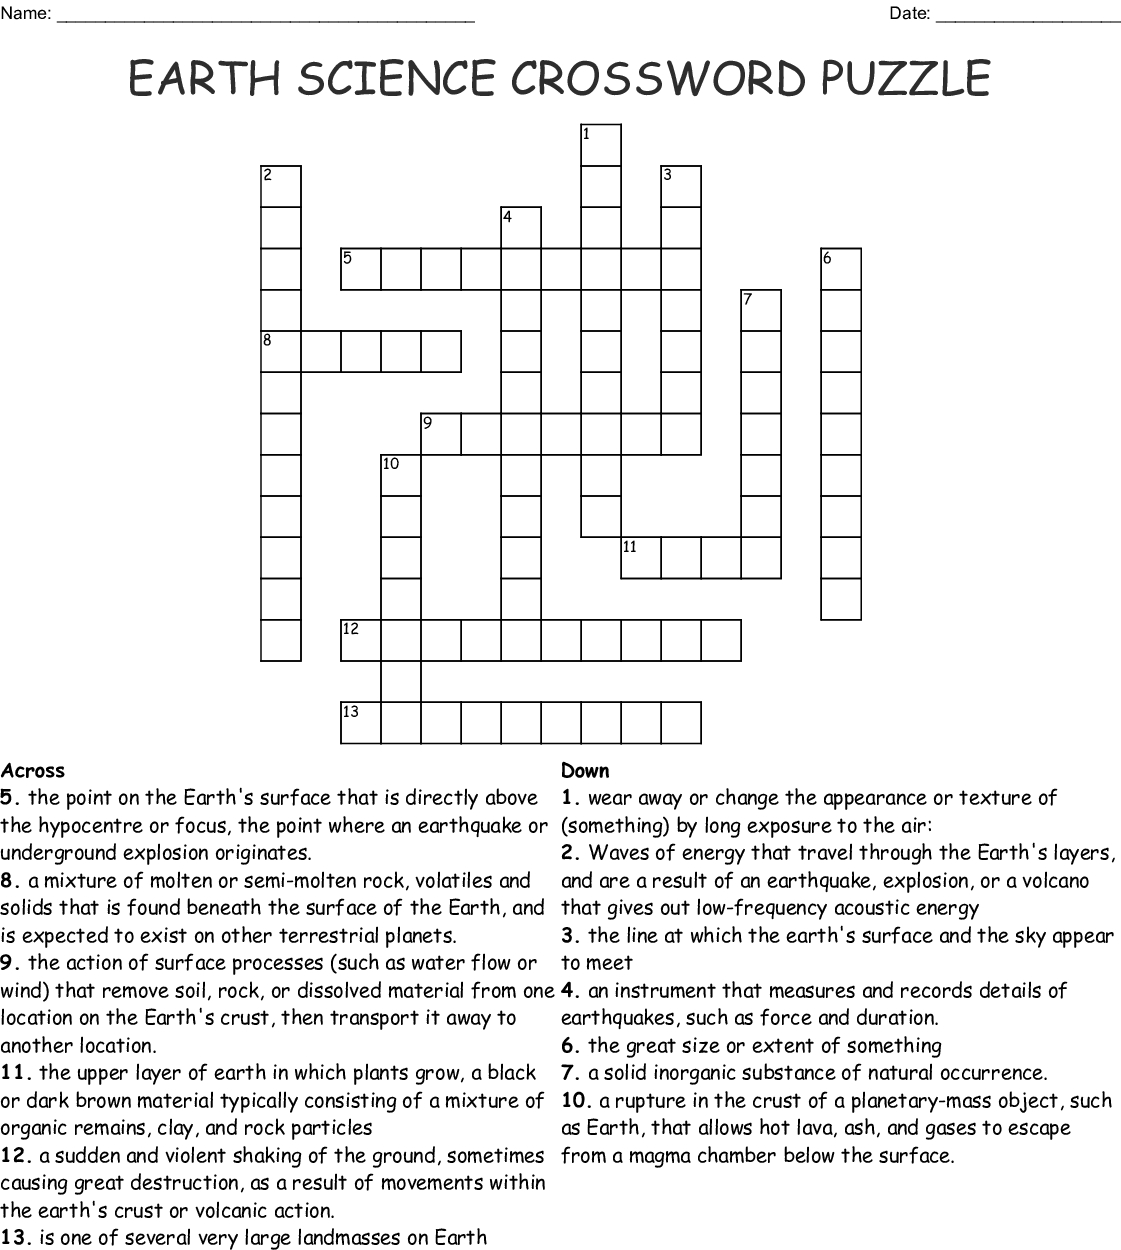 Free Printable Science Crossword Puzzles